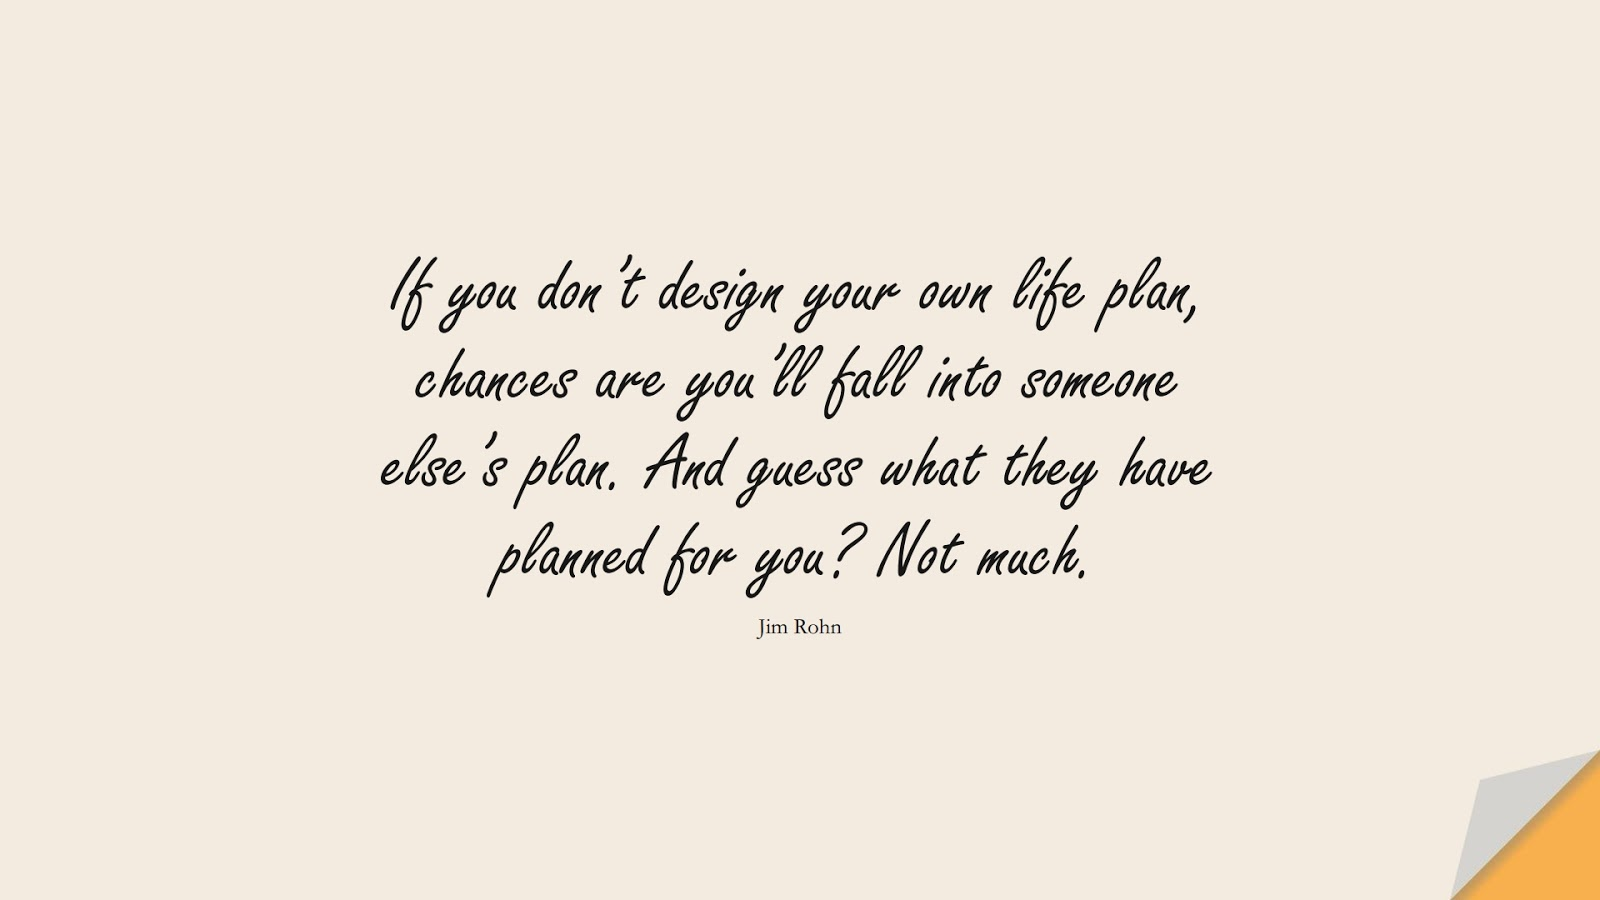 If you don't design your own life plan, chances are you'll fall into someone else's plan. And guess what they have planned for you? Not much. (Jim Rohn);  #HappinessQuotes